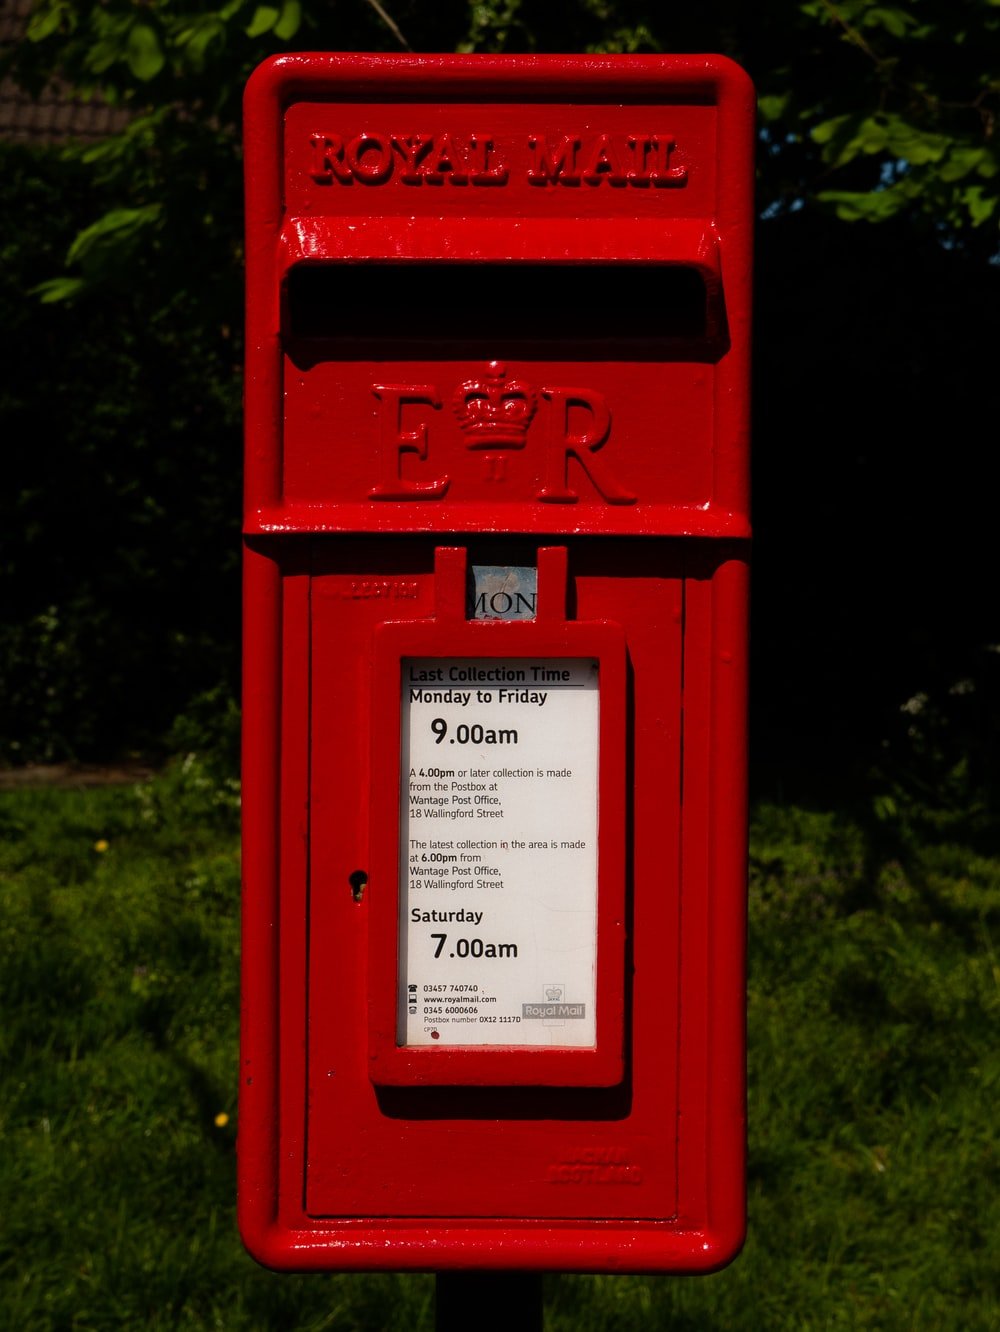 red mail box on green grass field